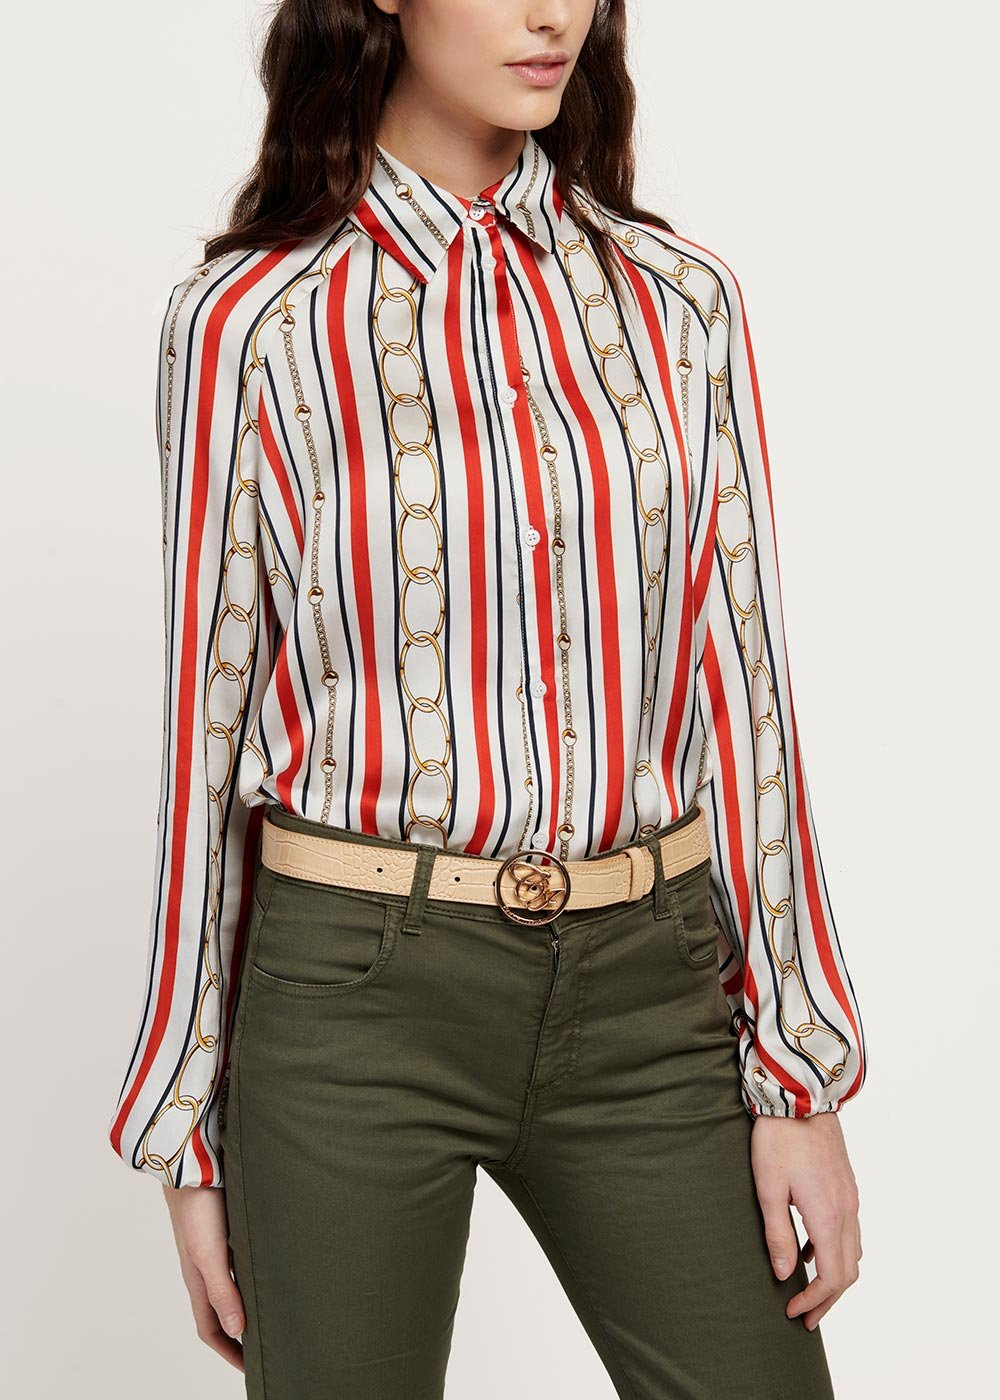 Cristina shirt with stripes and chains pattern - White / Blu / Stripes - Woman